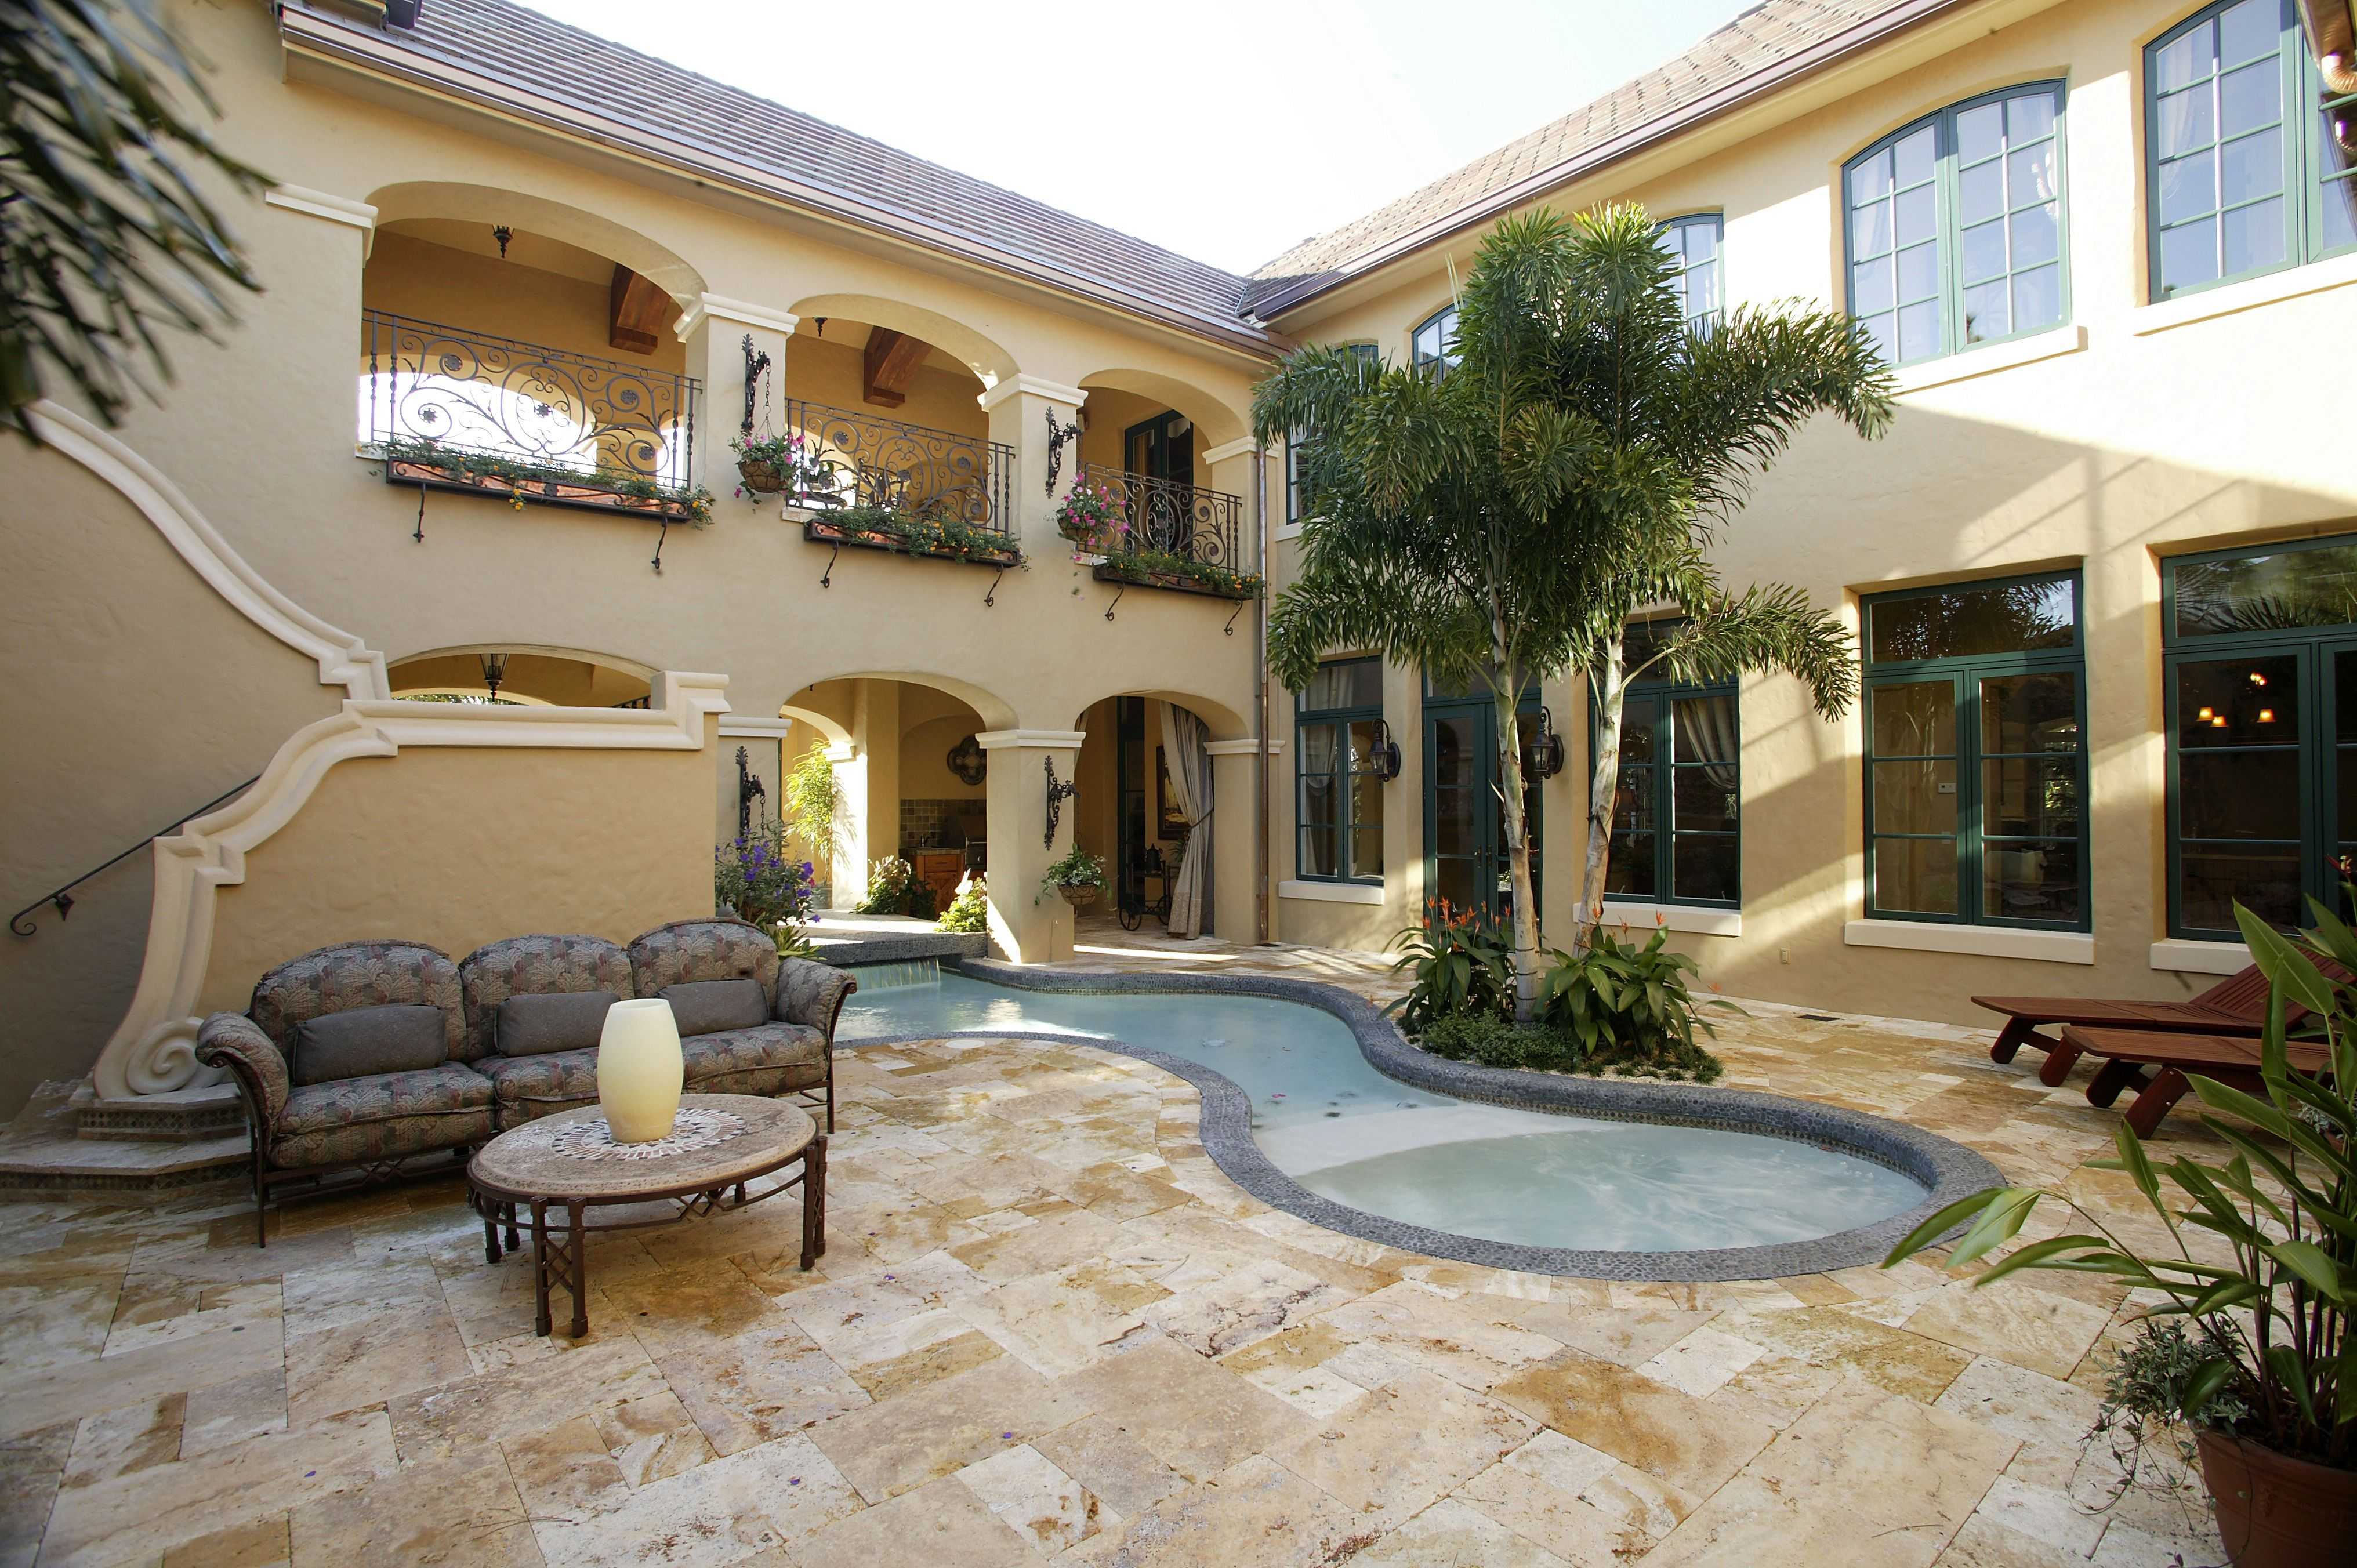 One Of The Largest Patios We Have Seen With A